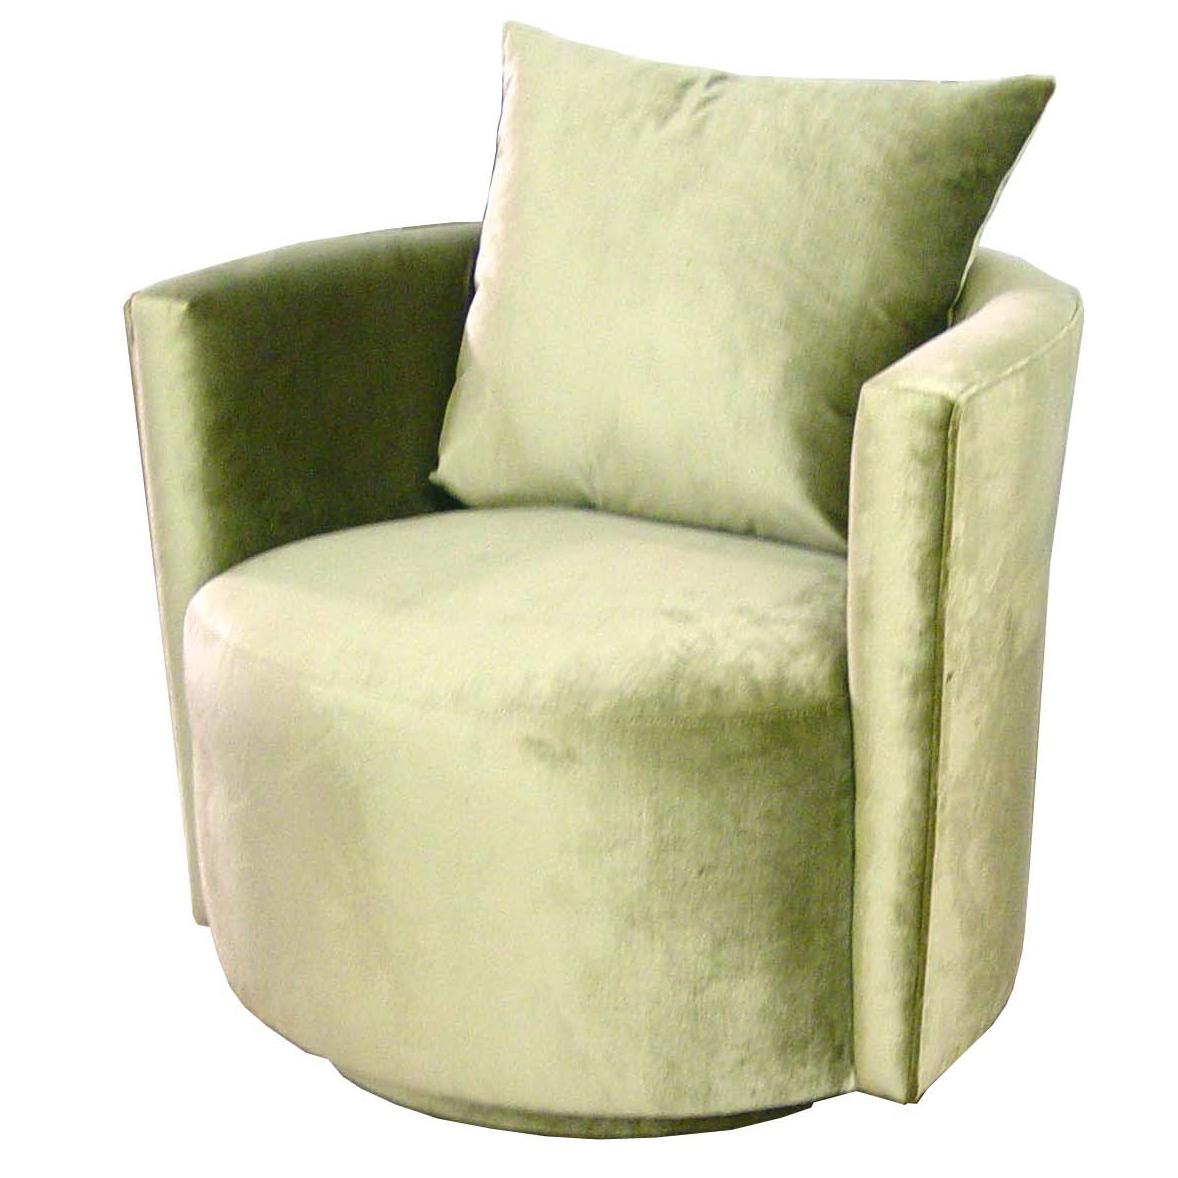 swivel chair round meditation jonathan louis 051 16 contemporary with